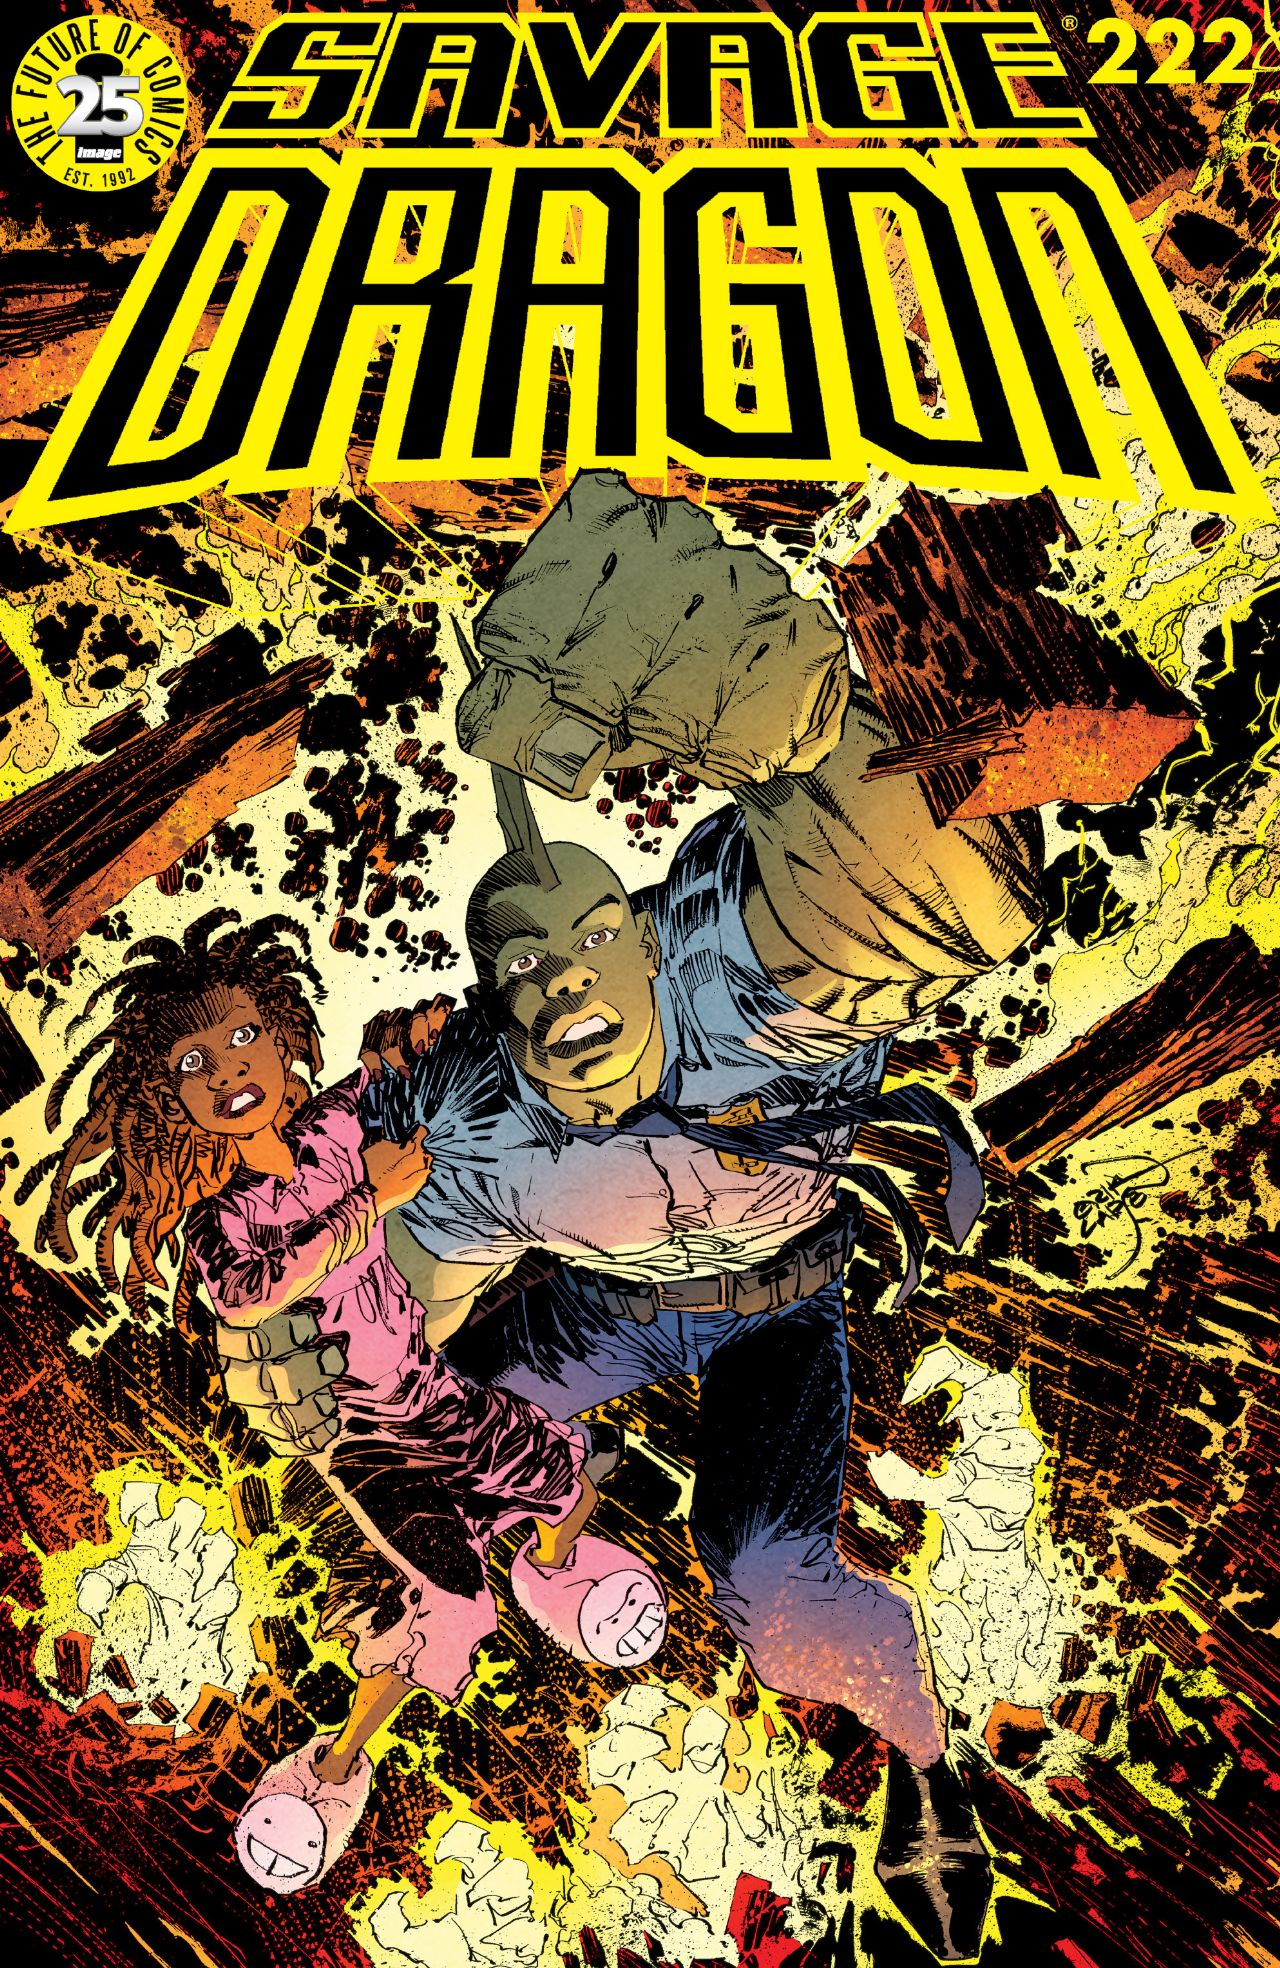 Cover Savage Dragon Vol.2 #222